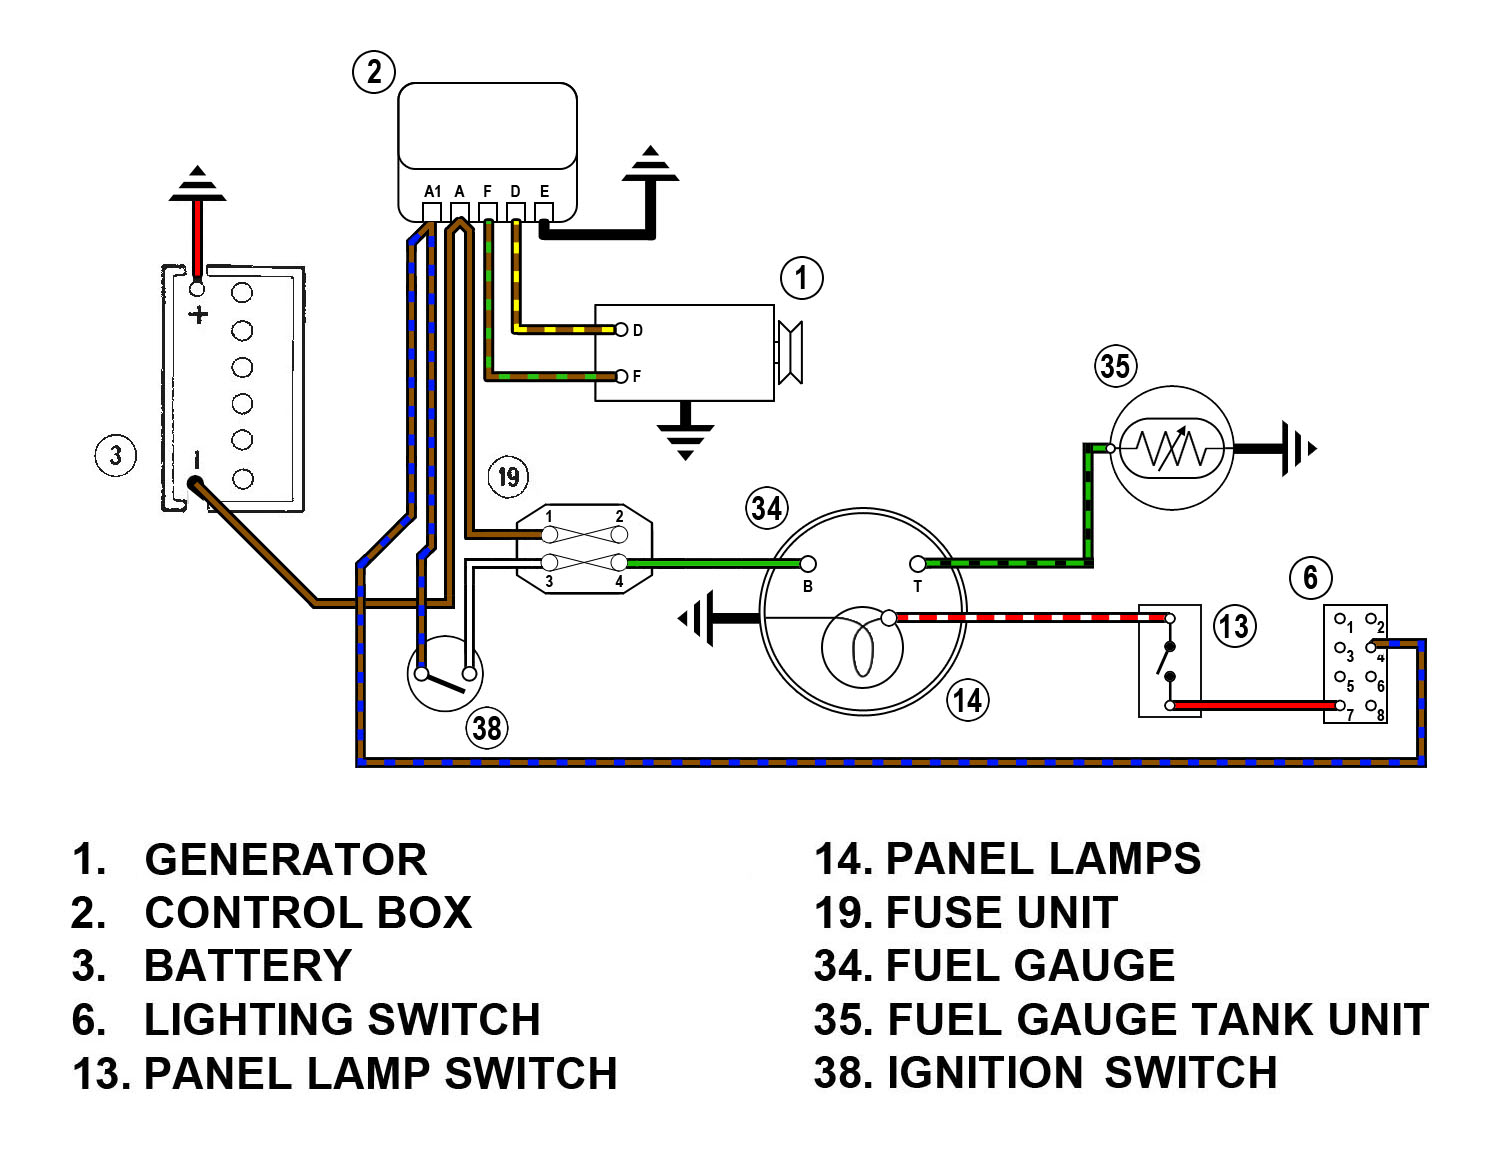 Auto Meter Fuel Level Wiring Diagram - Block And Schematic Diagrams •